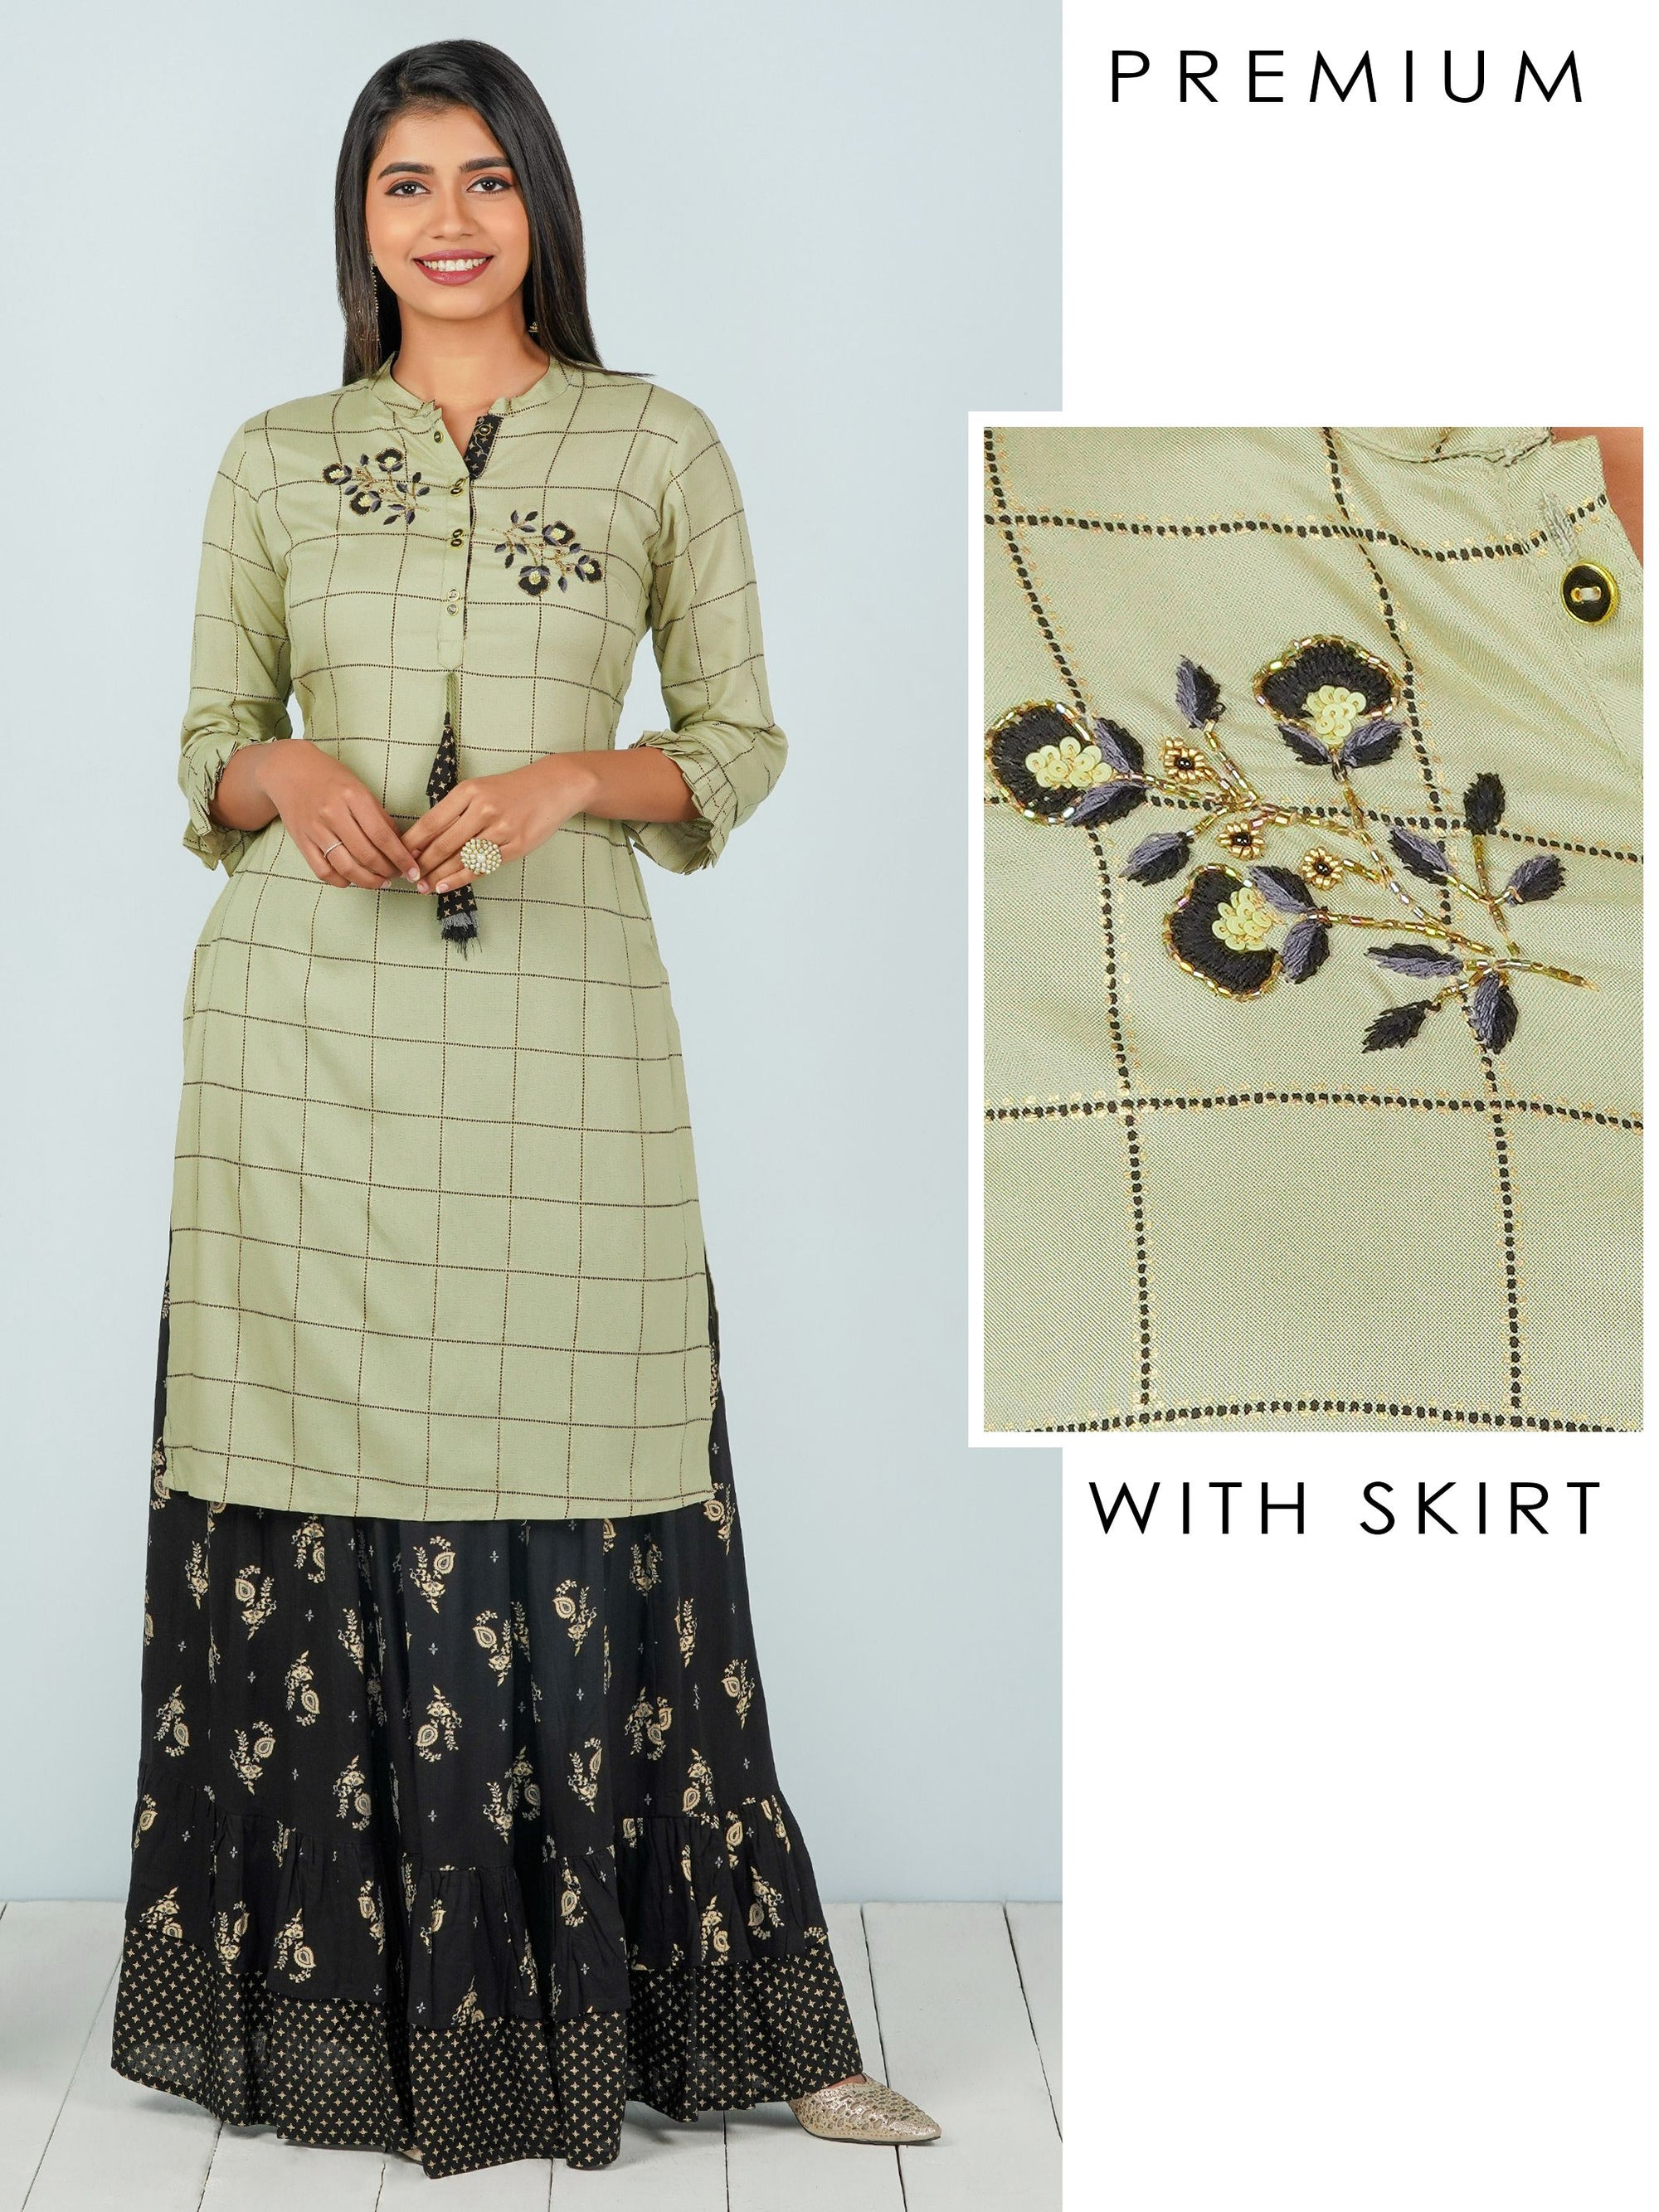 Intricate Embroidered Tunic & Foil Printed Tiered Skirt Set